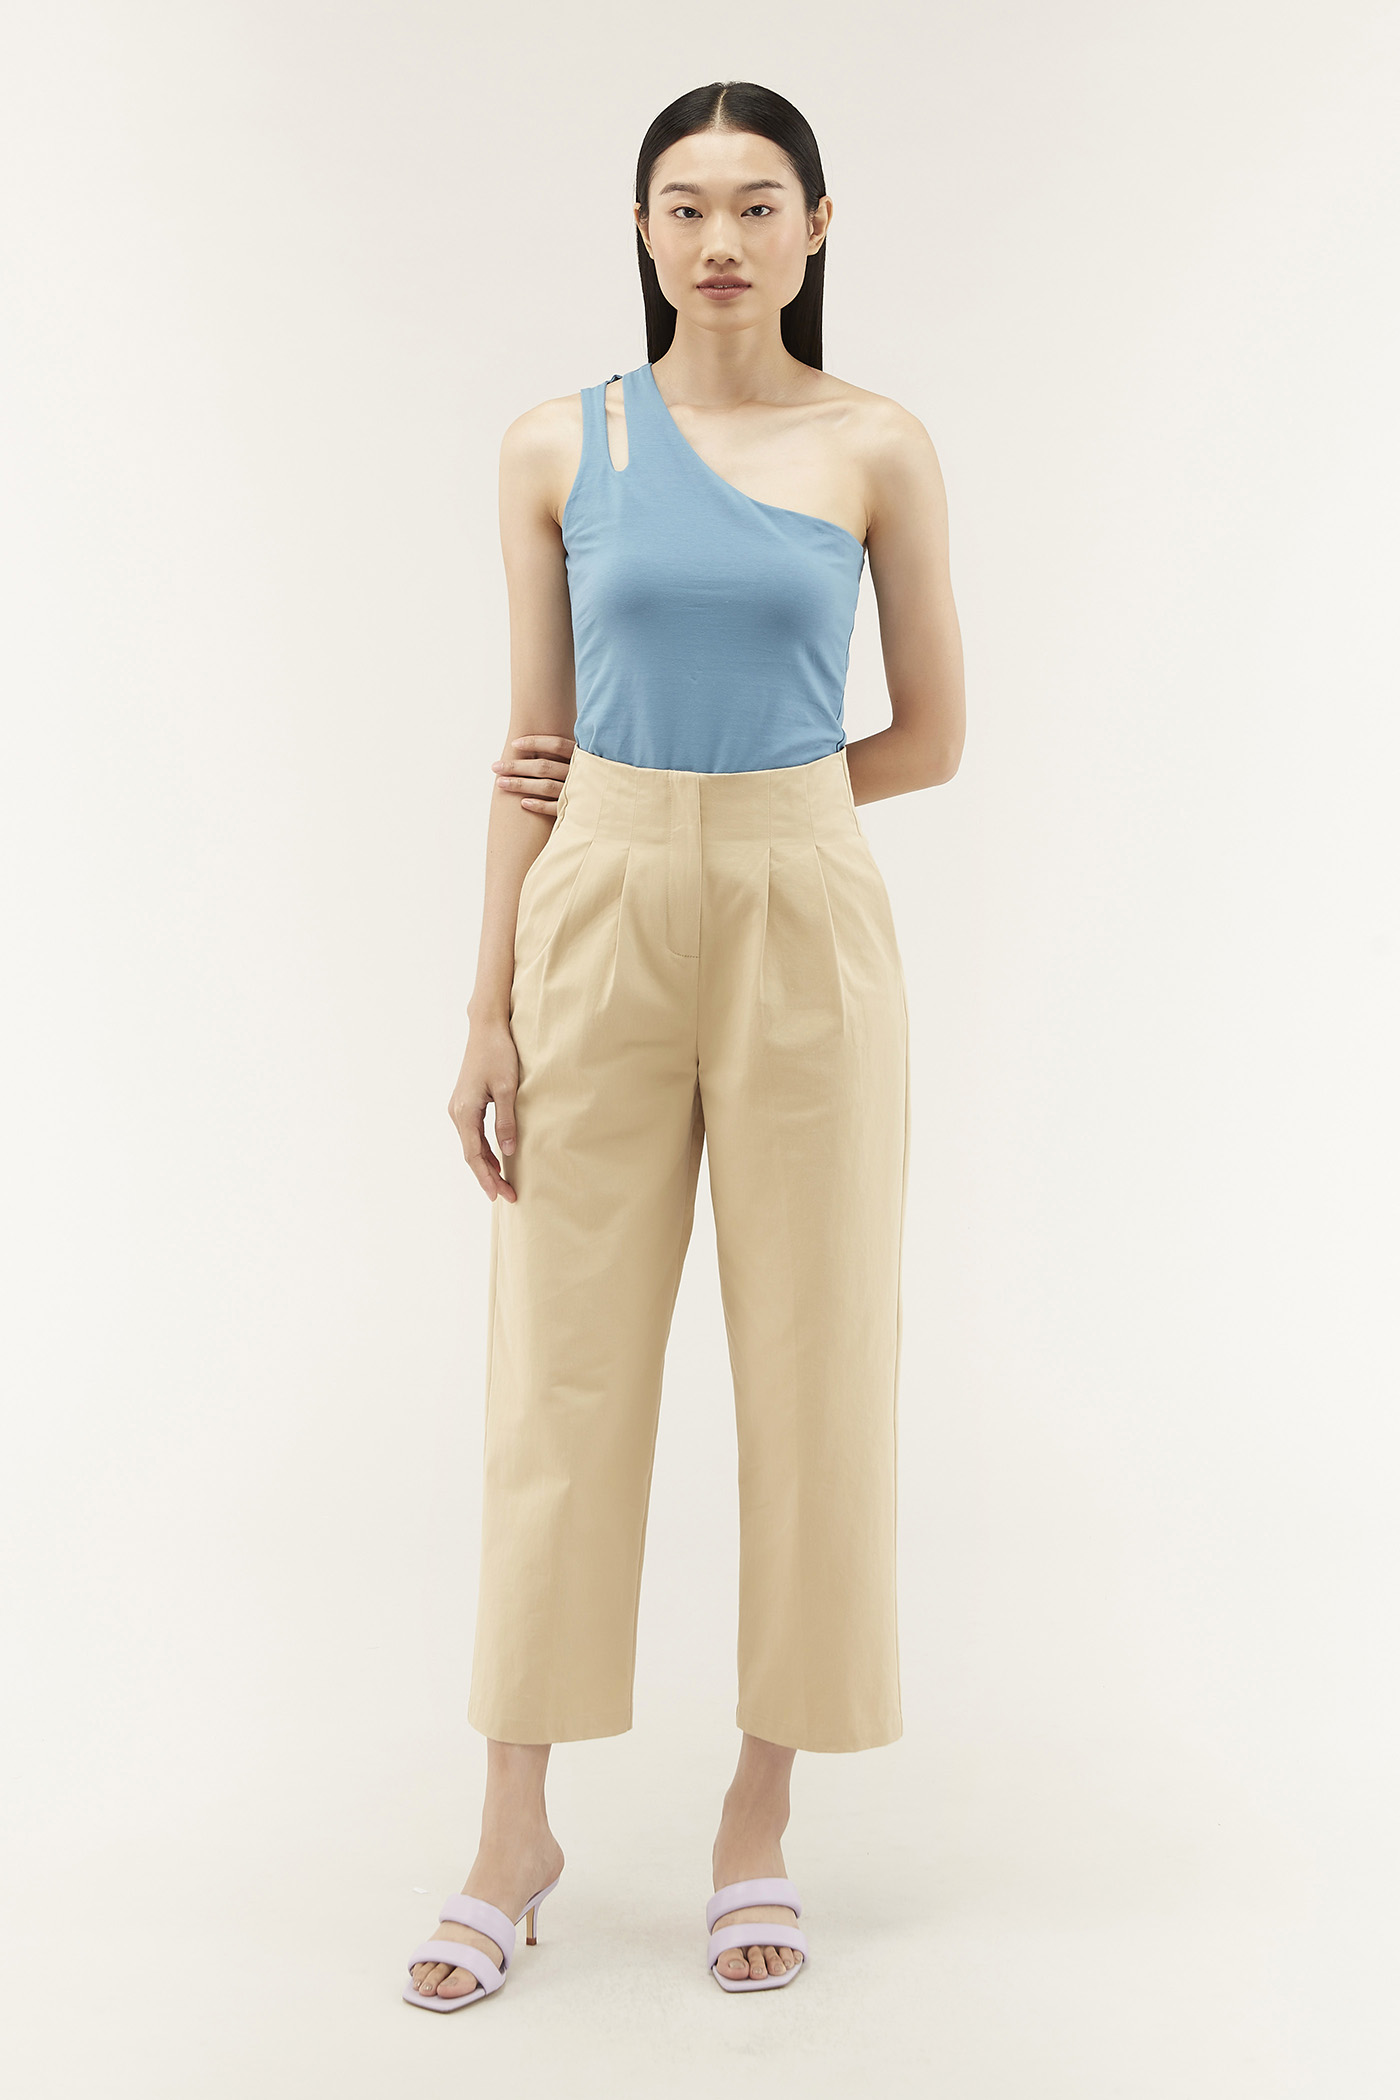 Bionca Flat-pleat Pants